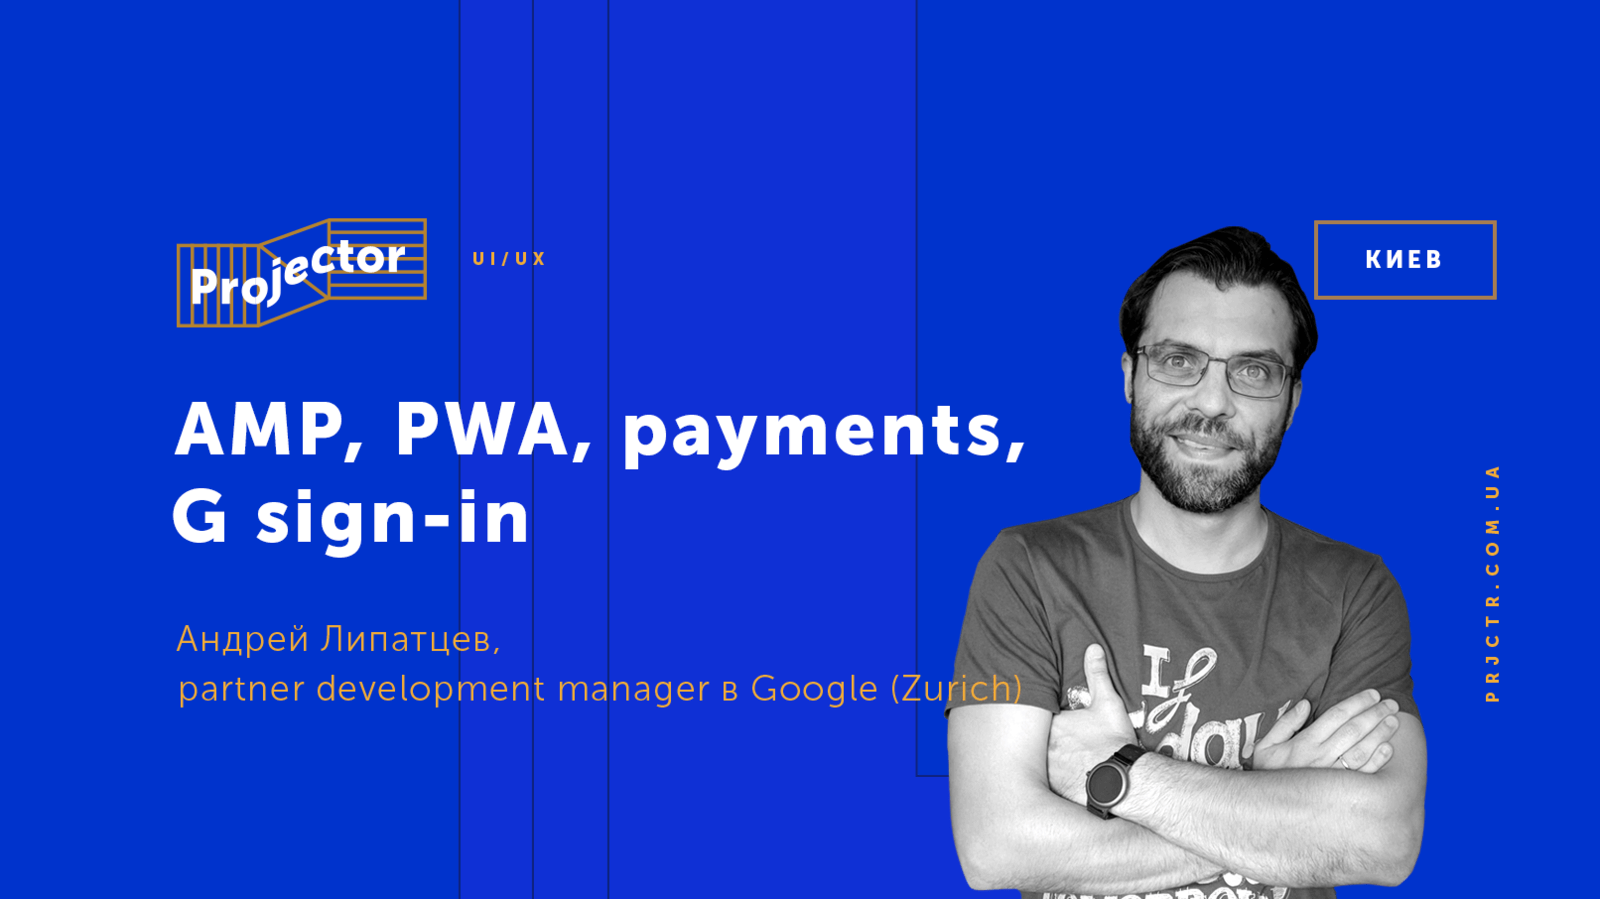 AMP, PWA, Payments, G Sign-in